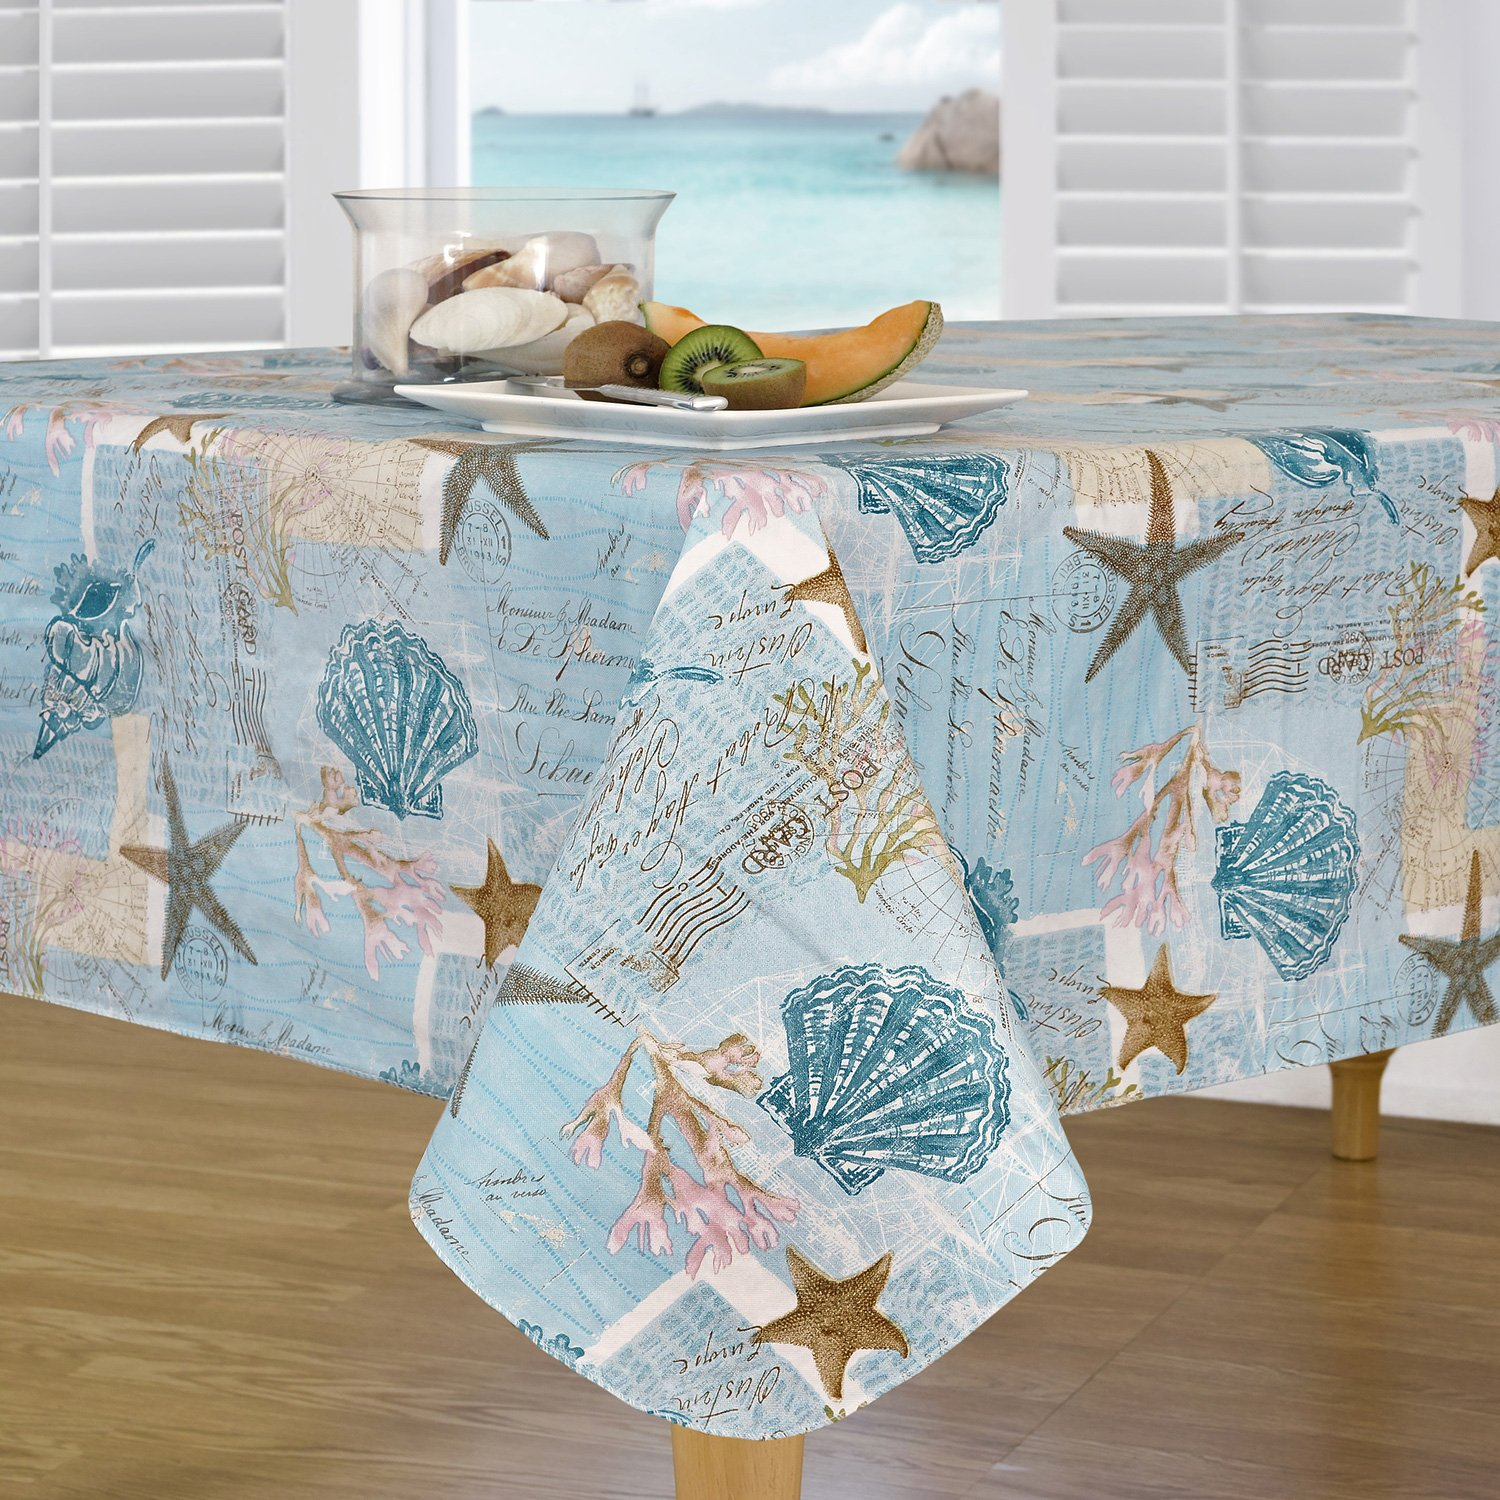 Everyday Luxuries by Newbridge Coastal Haven Flannel Backed Indoor Outdoor Vinyl Table Linens, 52-Inch by 52-Inch Square Tablecloth